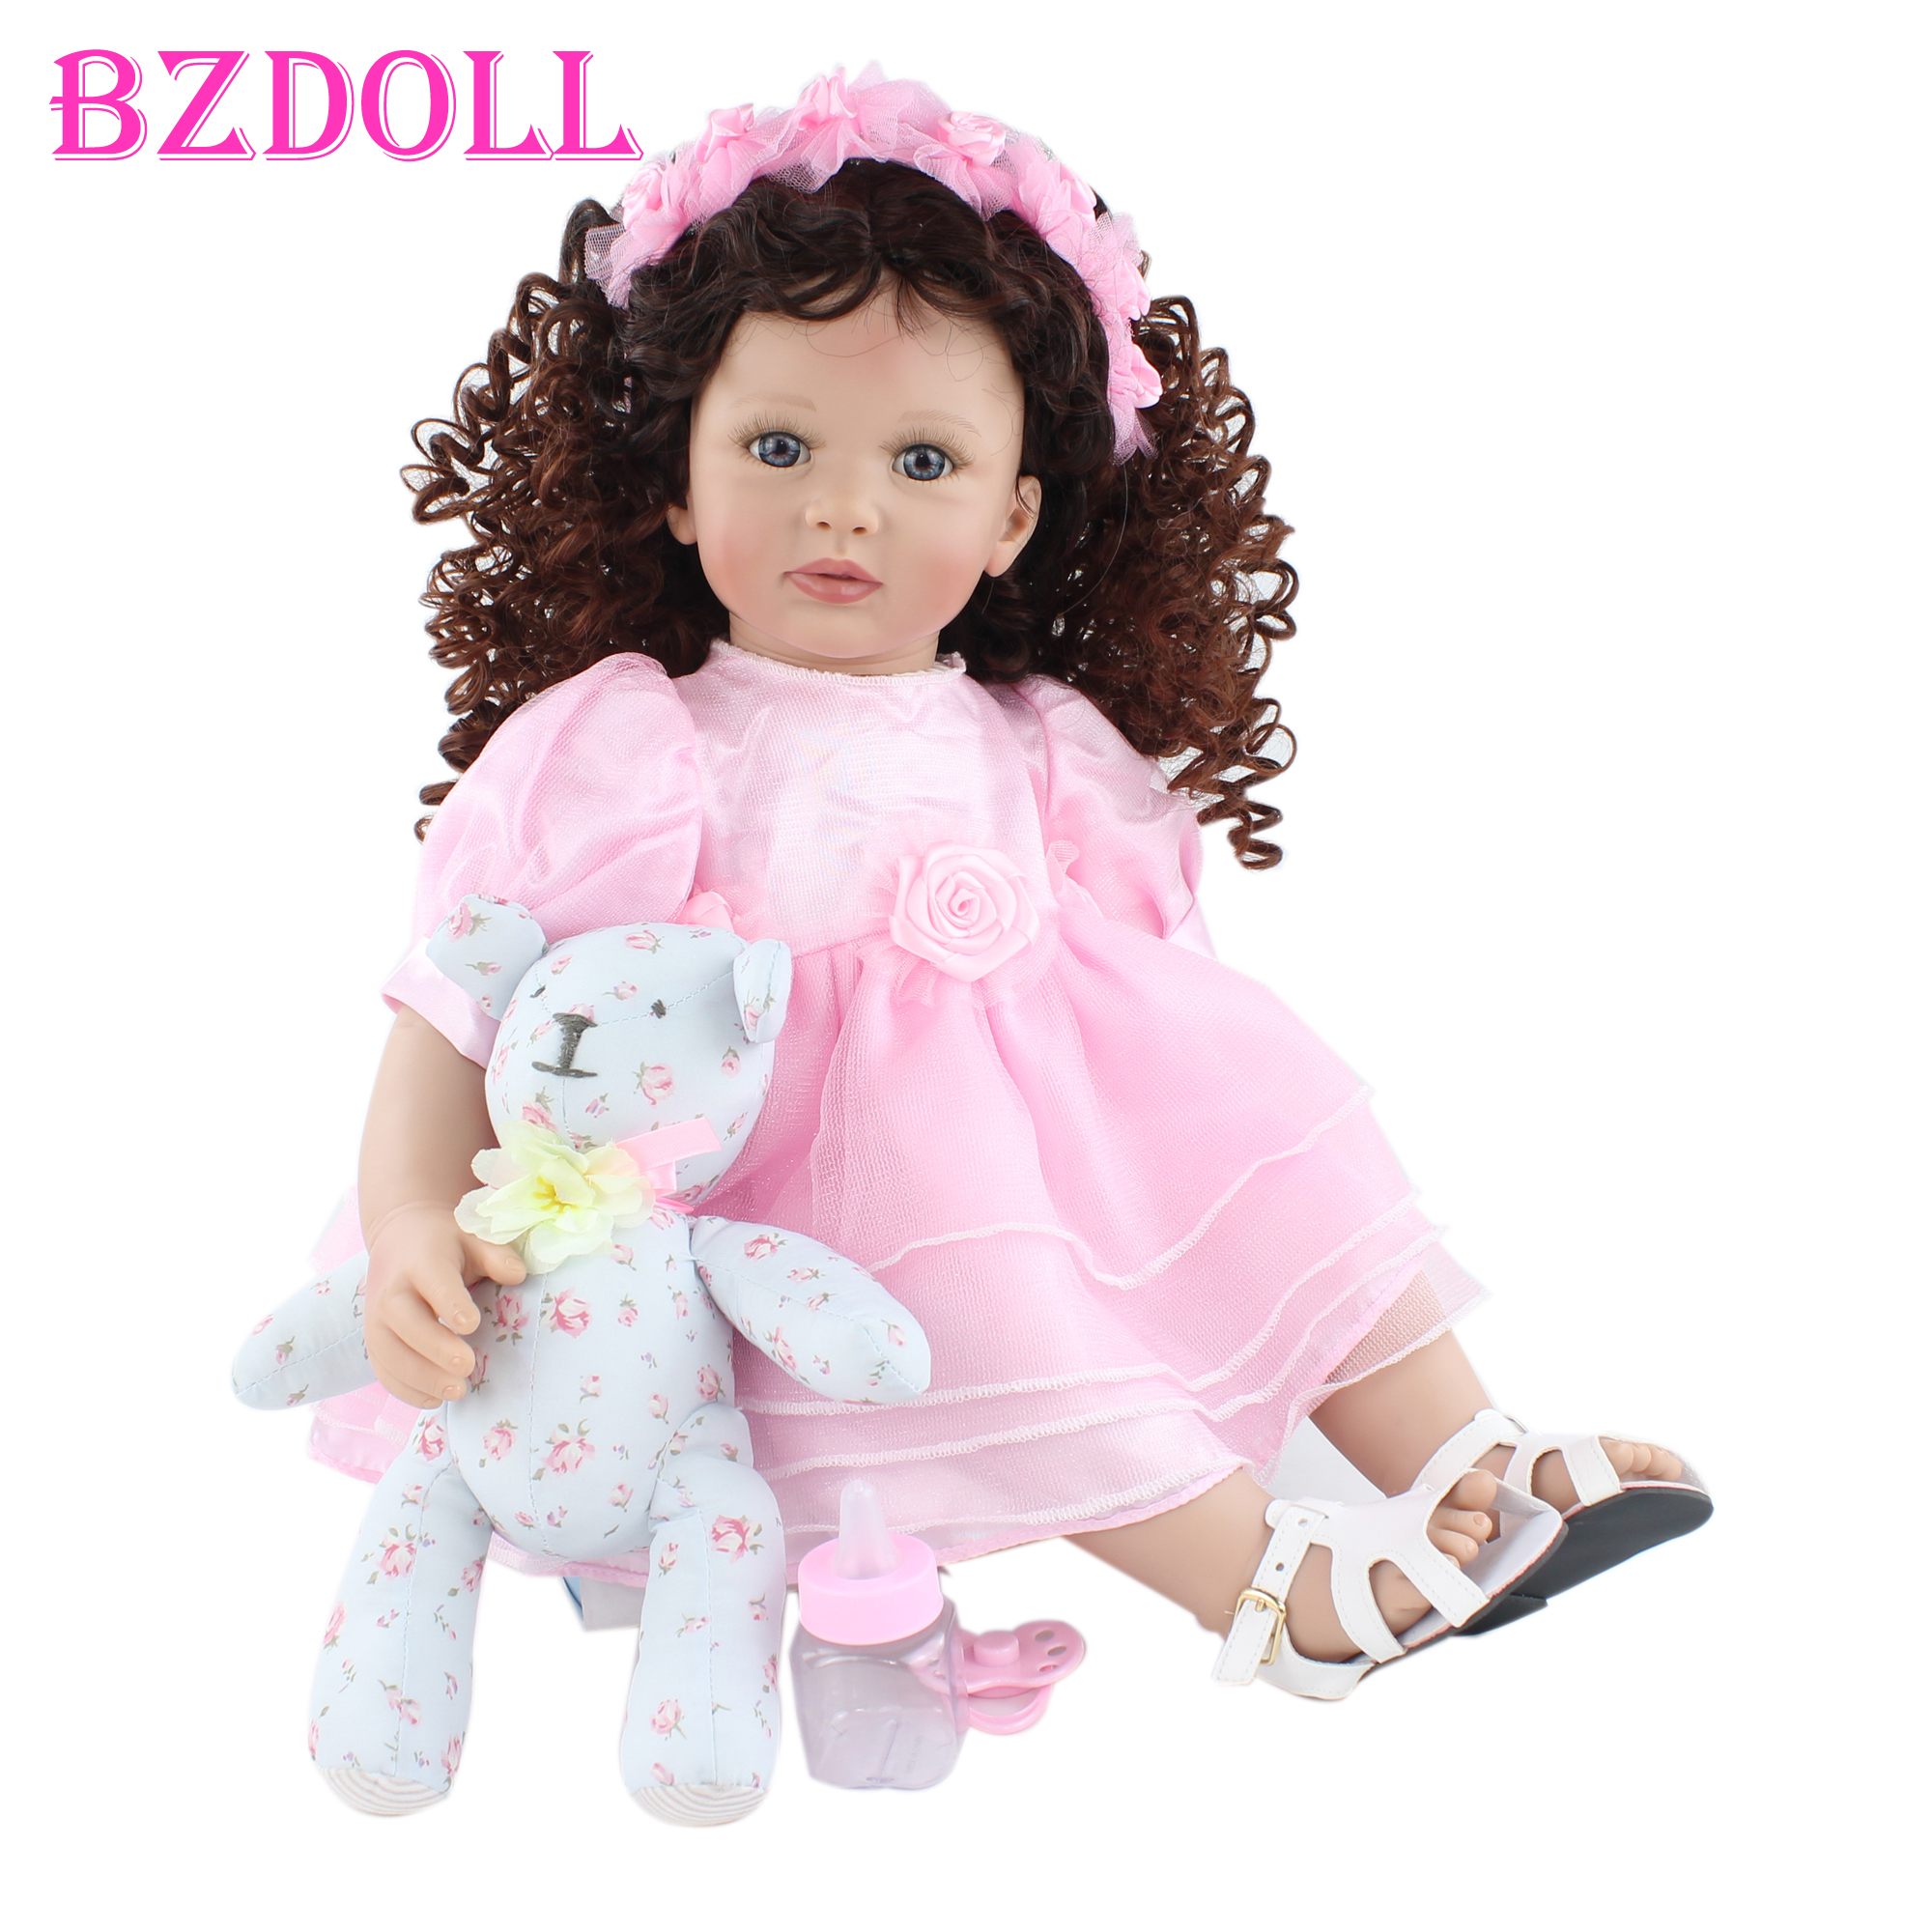 60cm Soft Silicone Reborn Toddler Doll For Girl Cloth Body Pink Dress Princess Baby Lovely Kids Birthday Gift Play House Toy